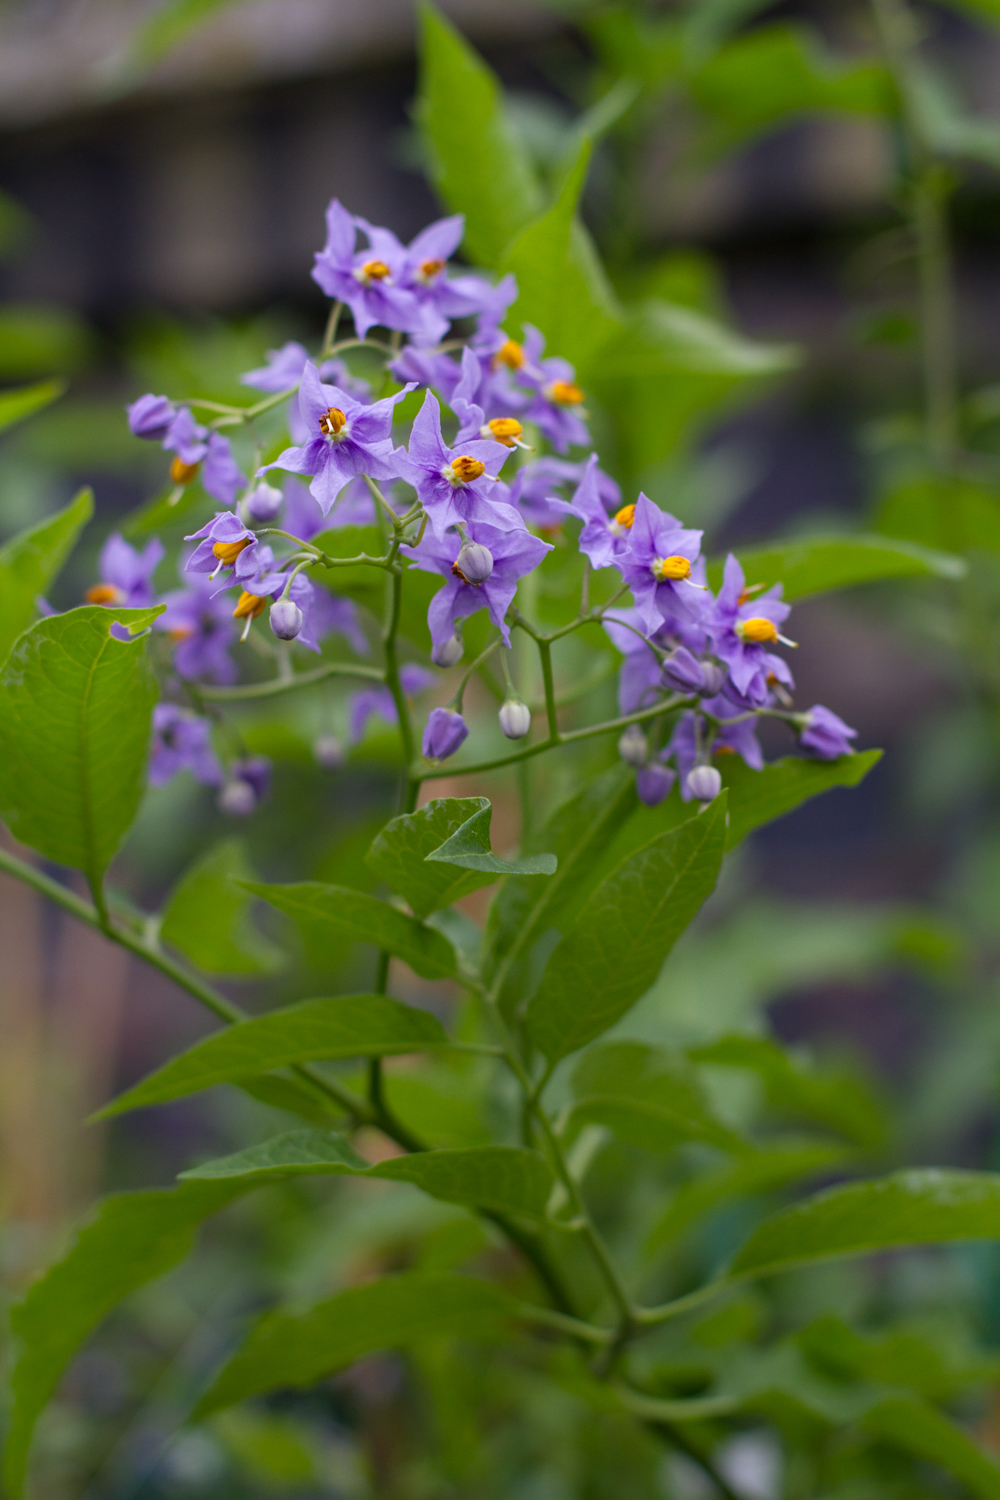 Solanum / Potato vine